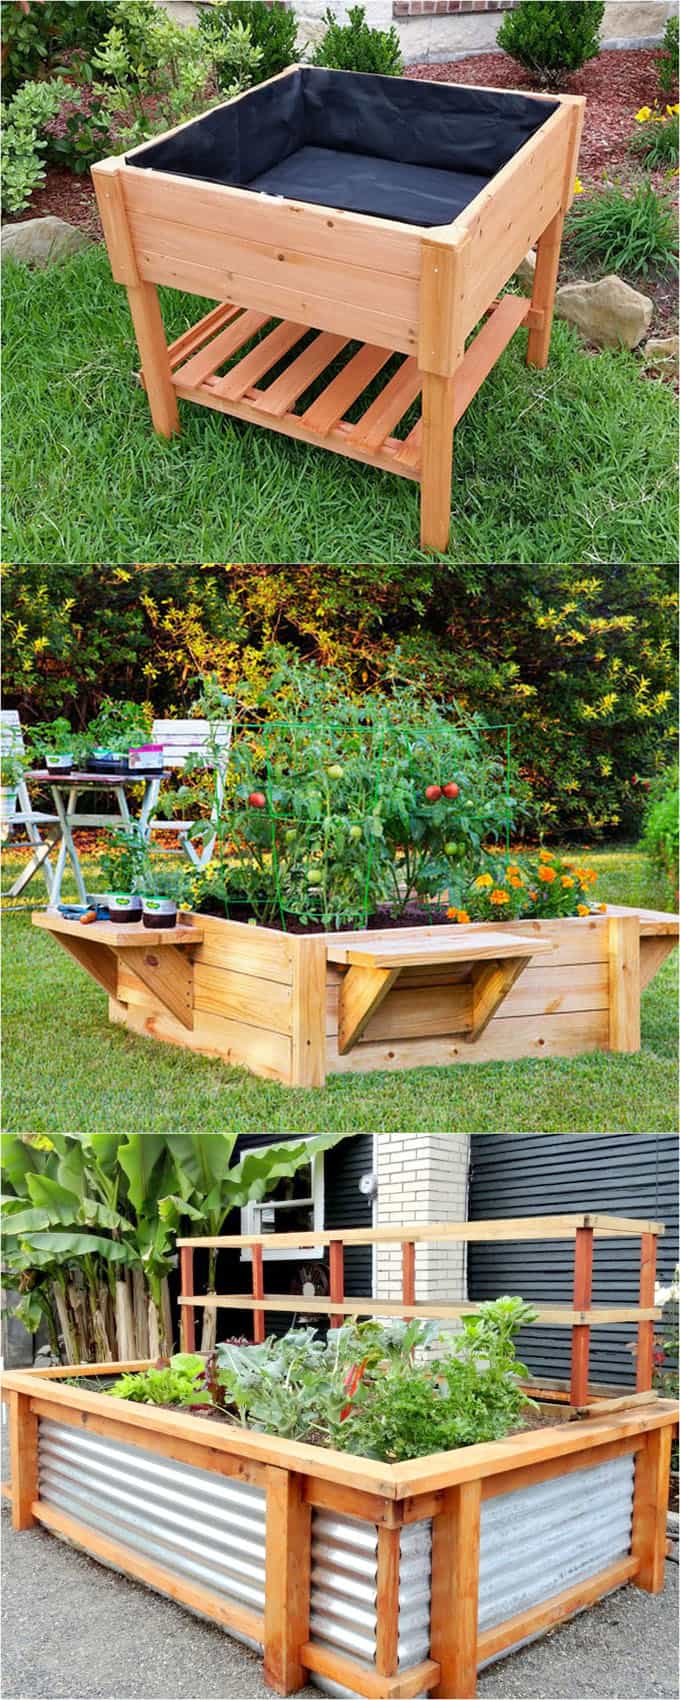 28 amazing diy raised bed gardens TZDFCWW